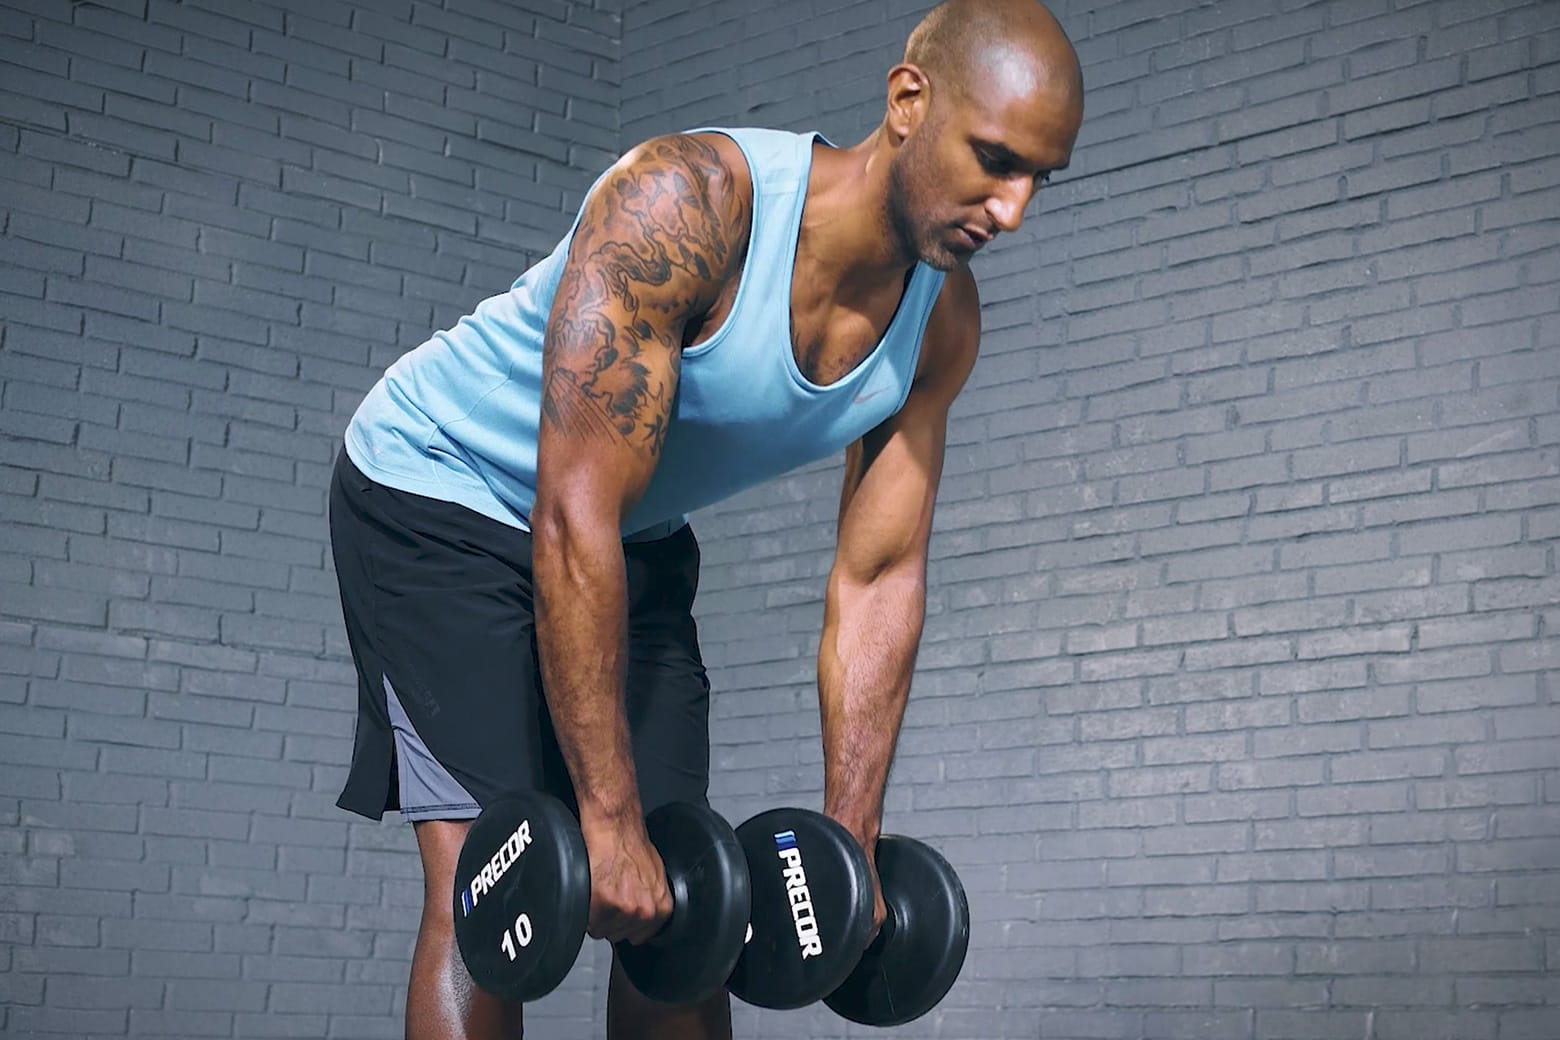 Tutorial: Dumbbell deadlift